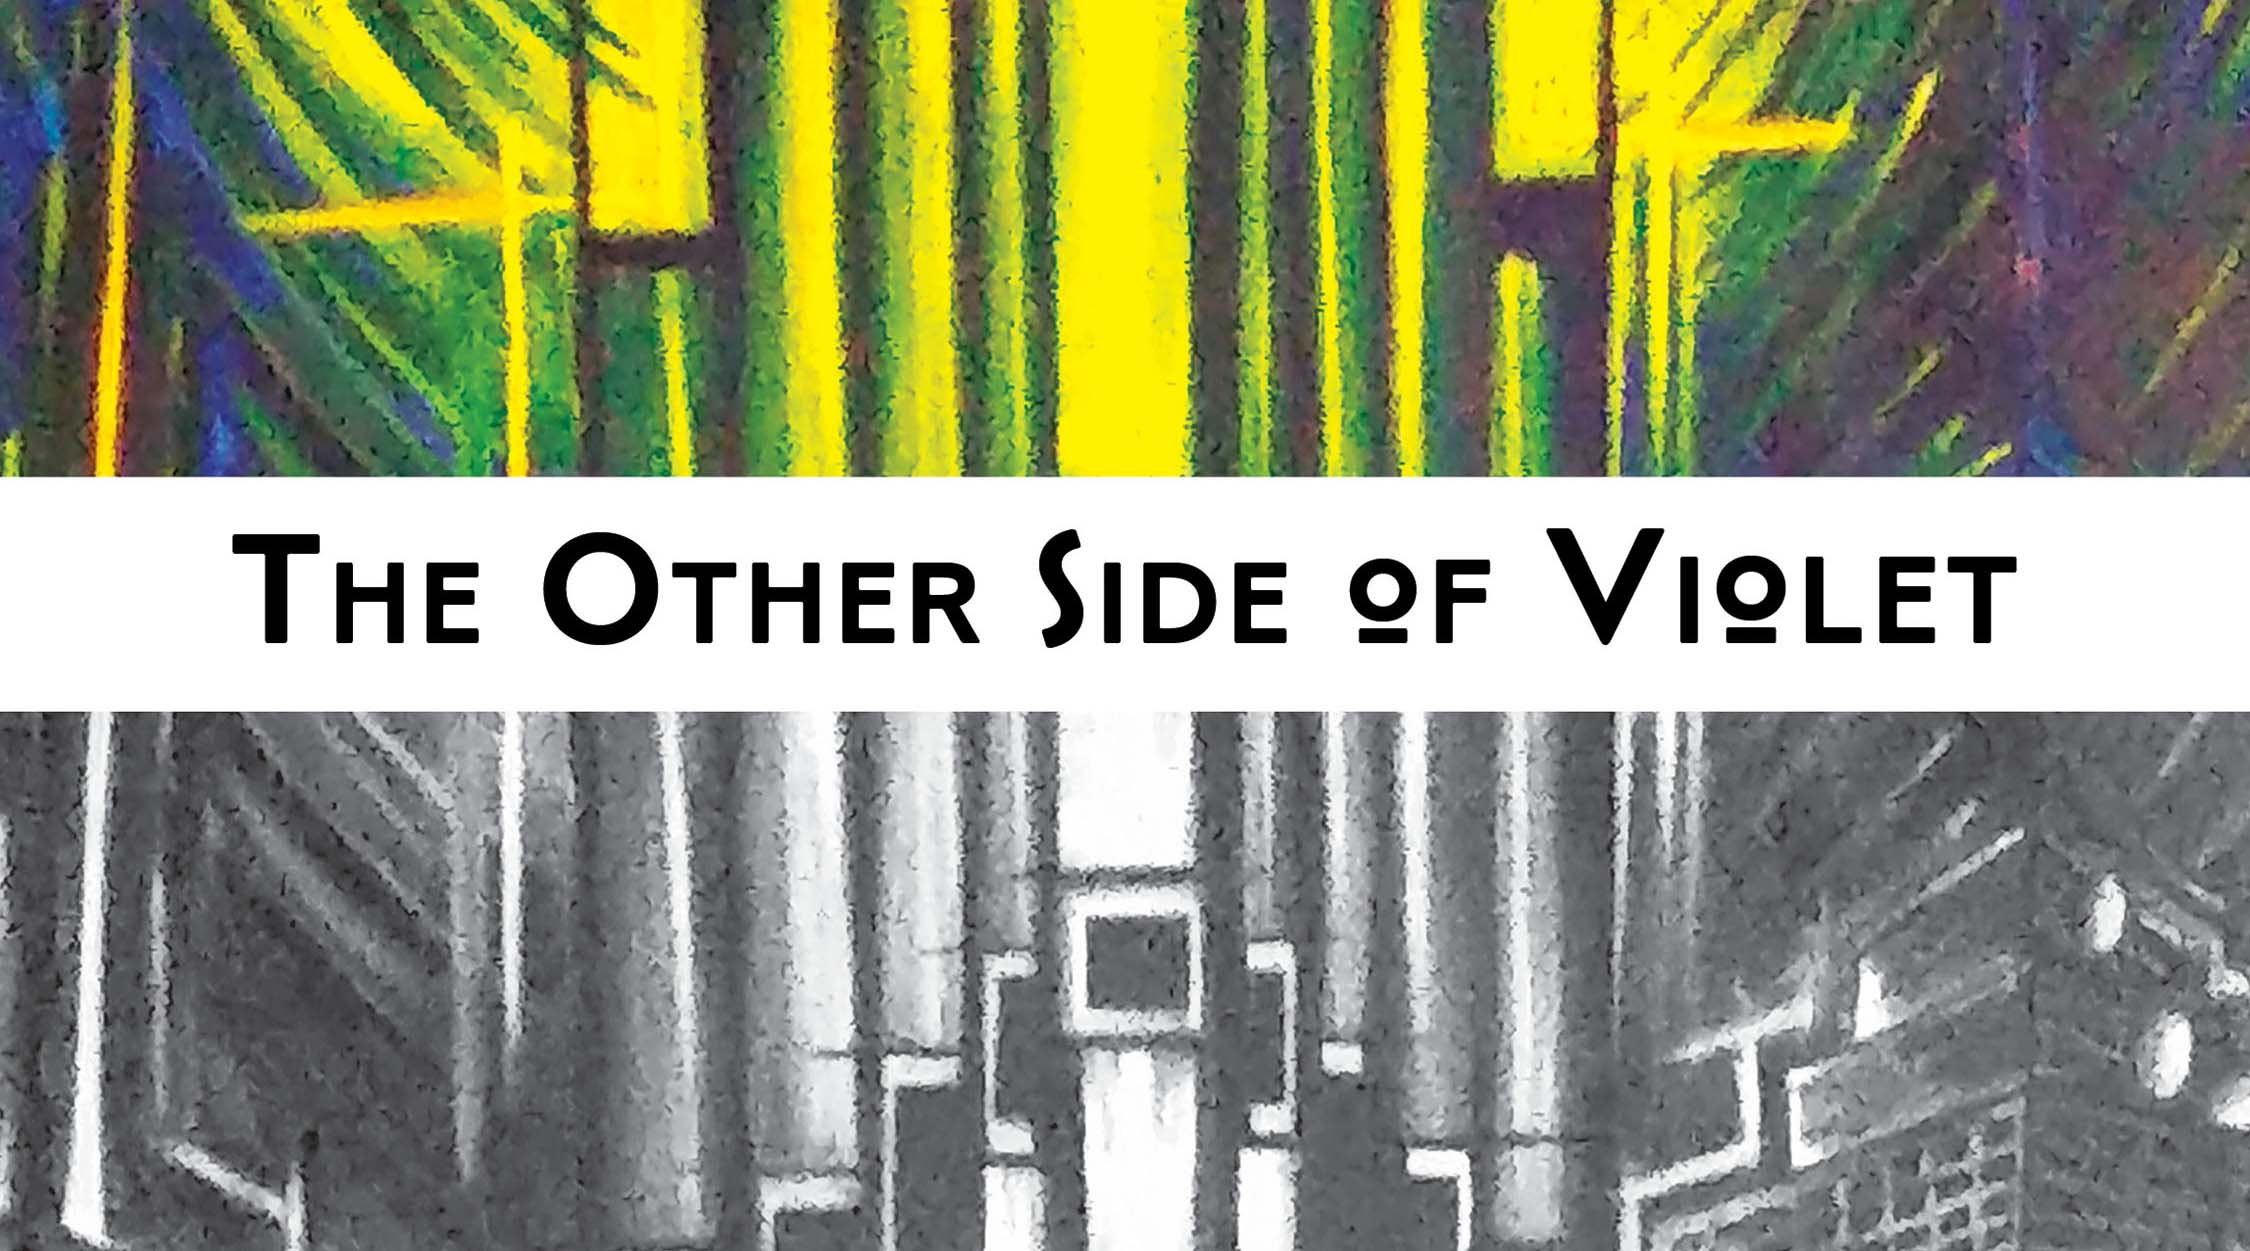 The Other Side of Violet front cover title crop.jpg